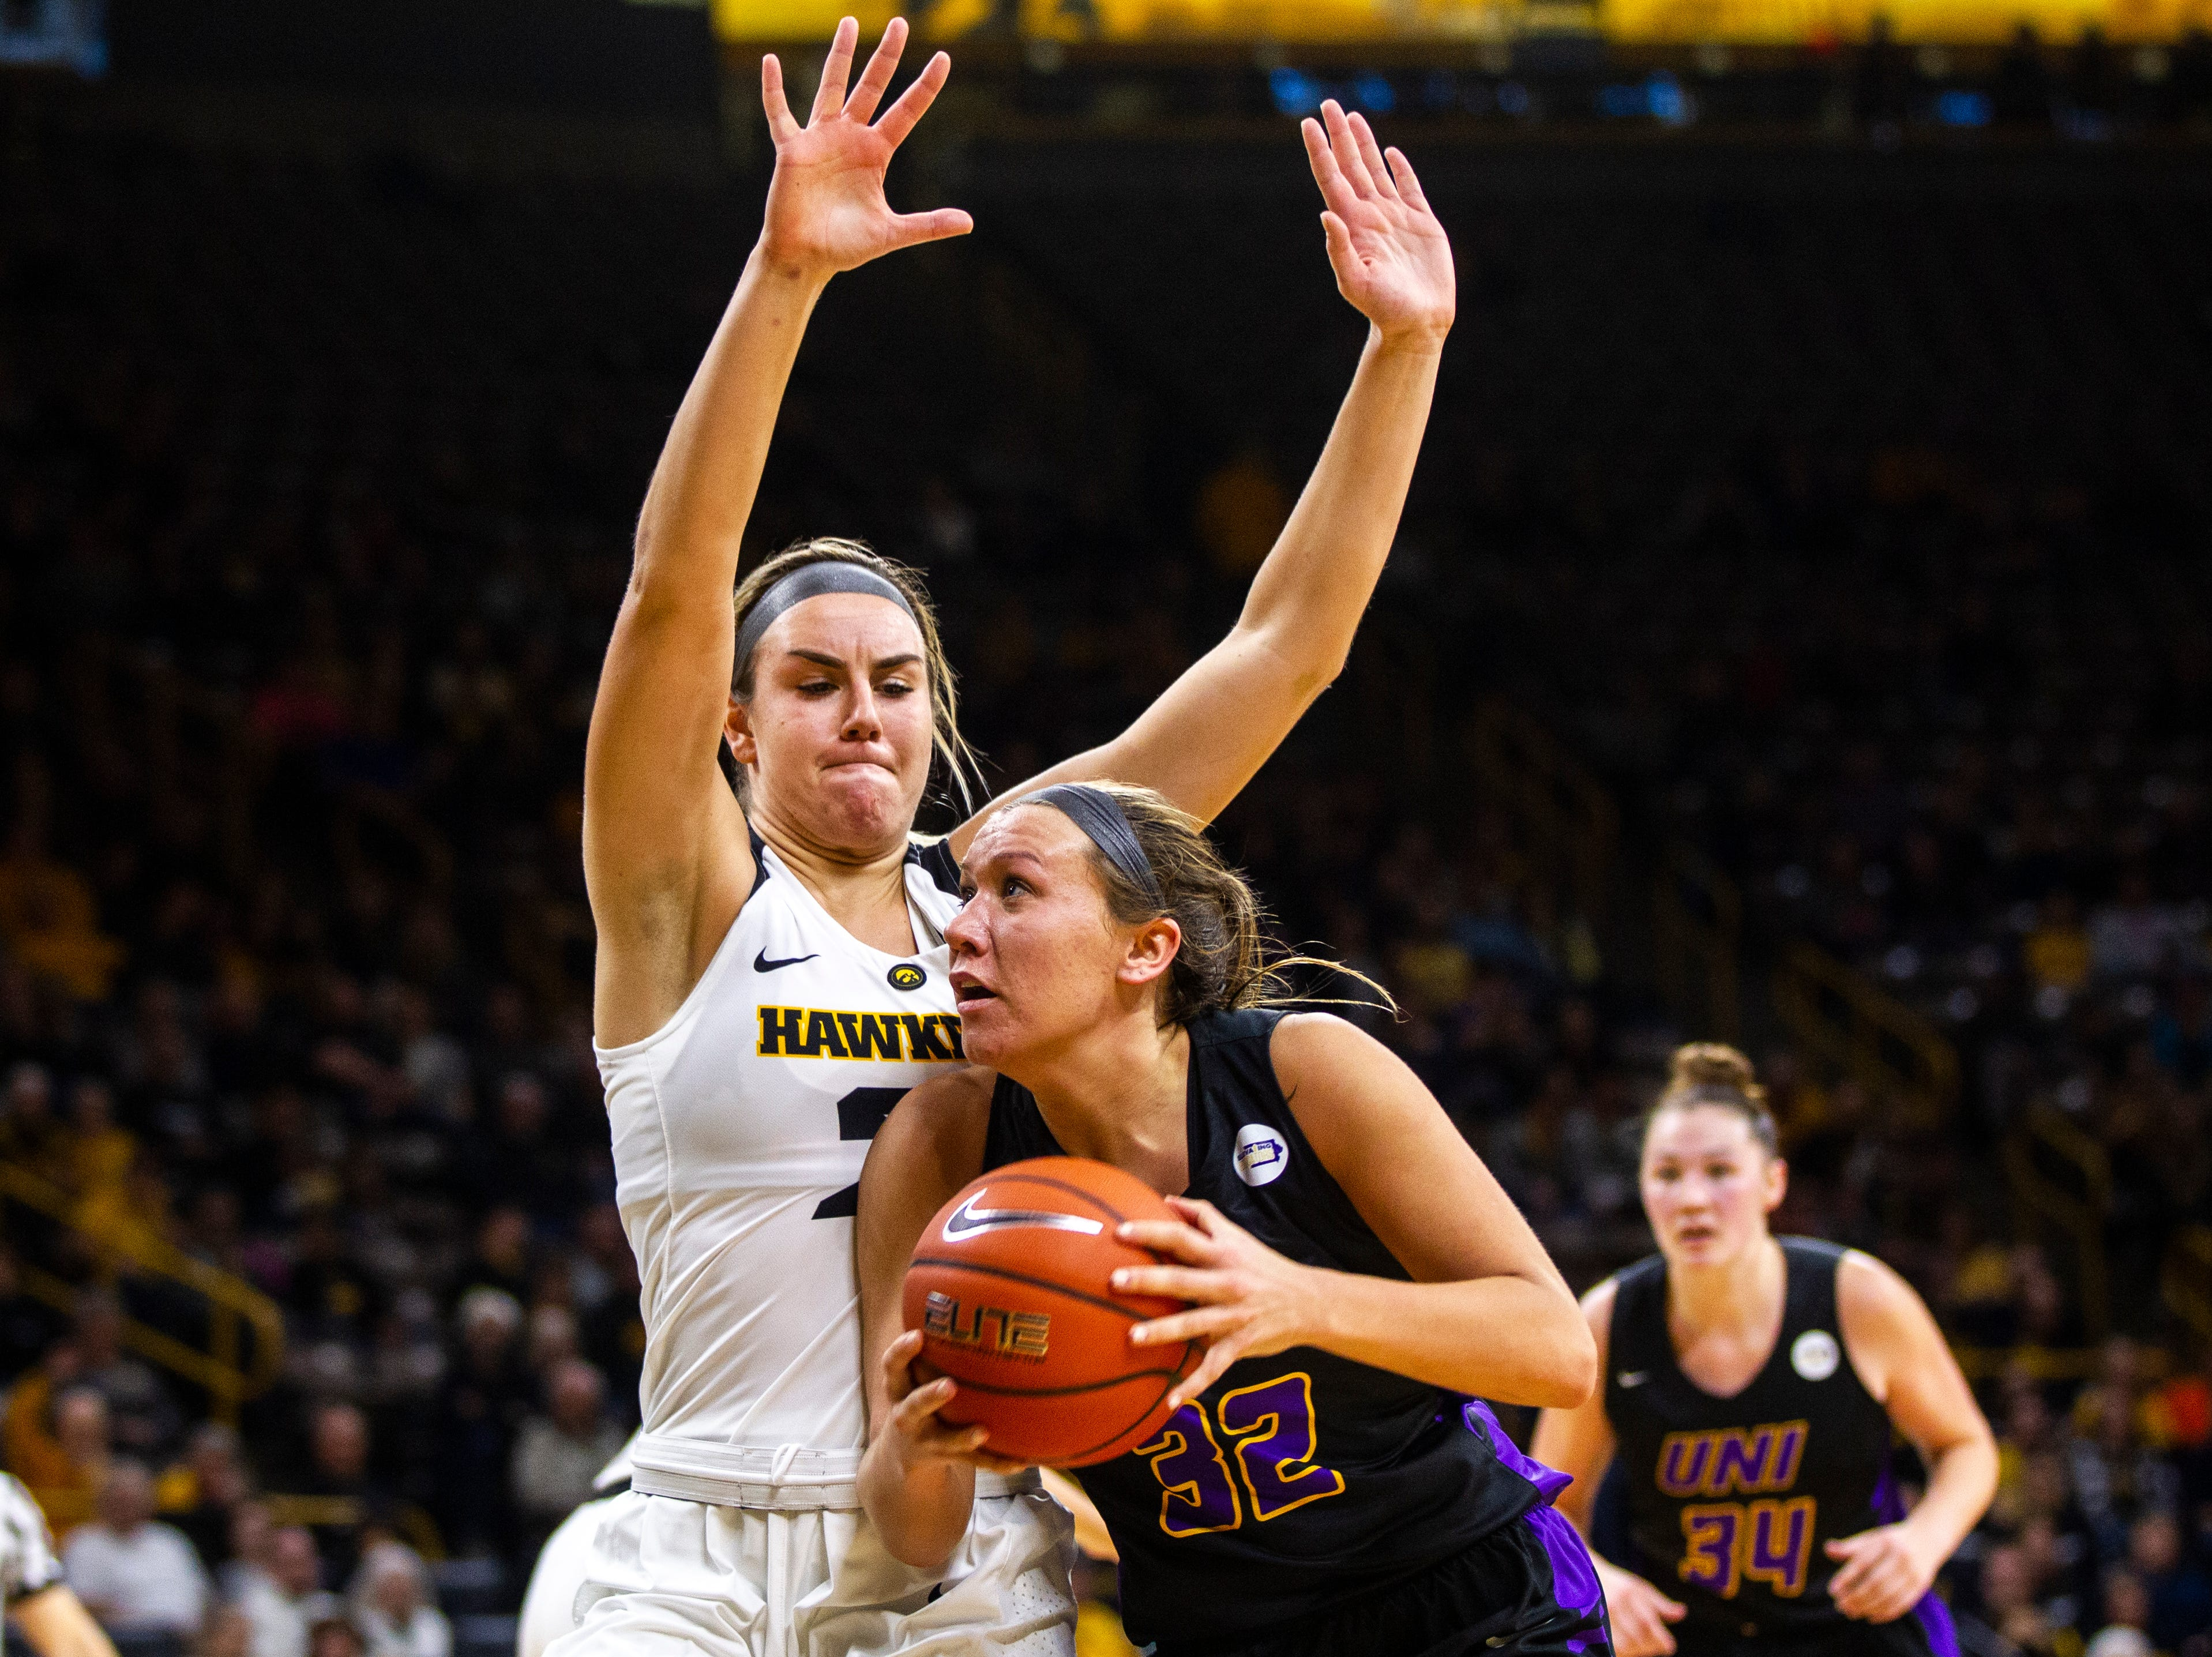 Iowa forward Hannah Stewart (21) defends Northern Iowa forward Heidi Hillyard (32) during a NCAA women's basketball game on Sunday, Dec. 16, 2018, at Carver-Hawkeye Arena in Iowa City.